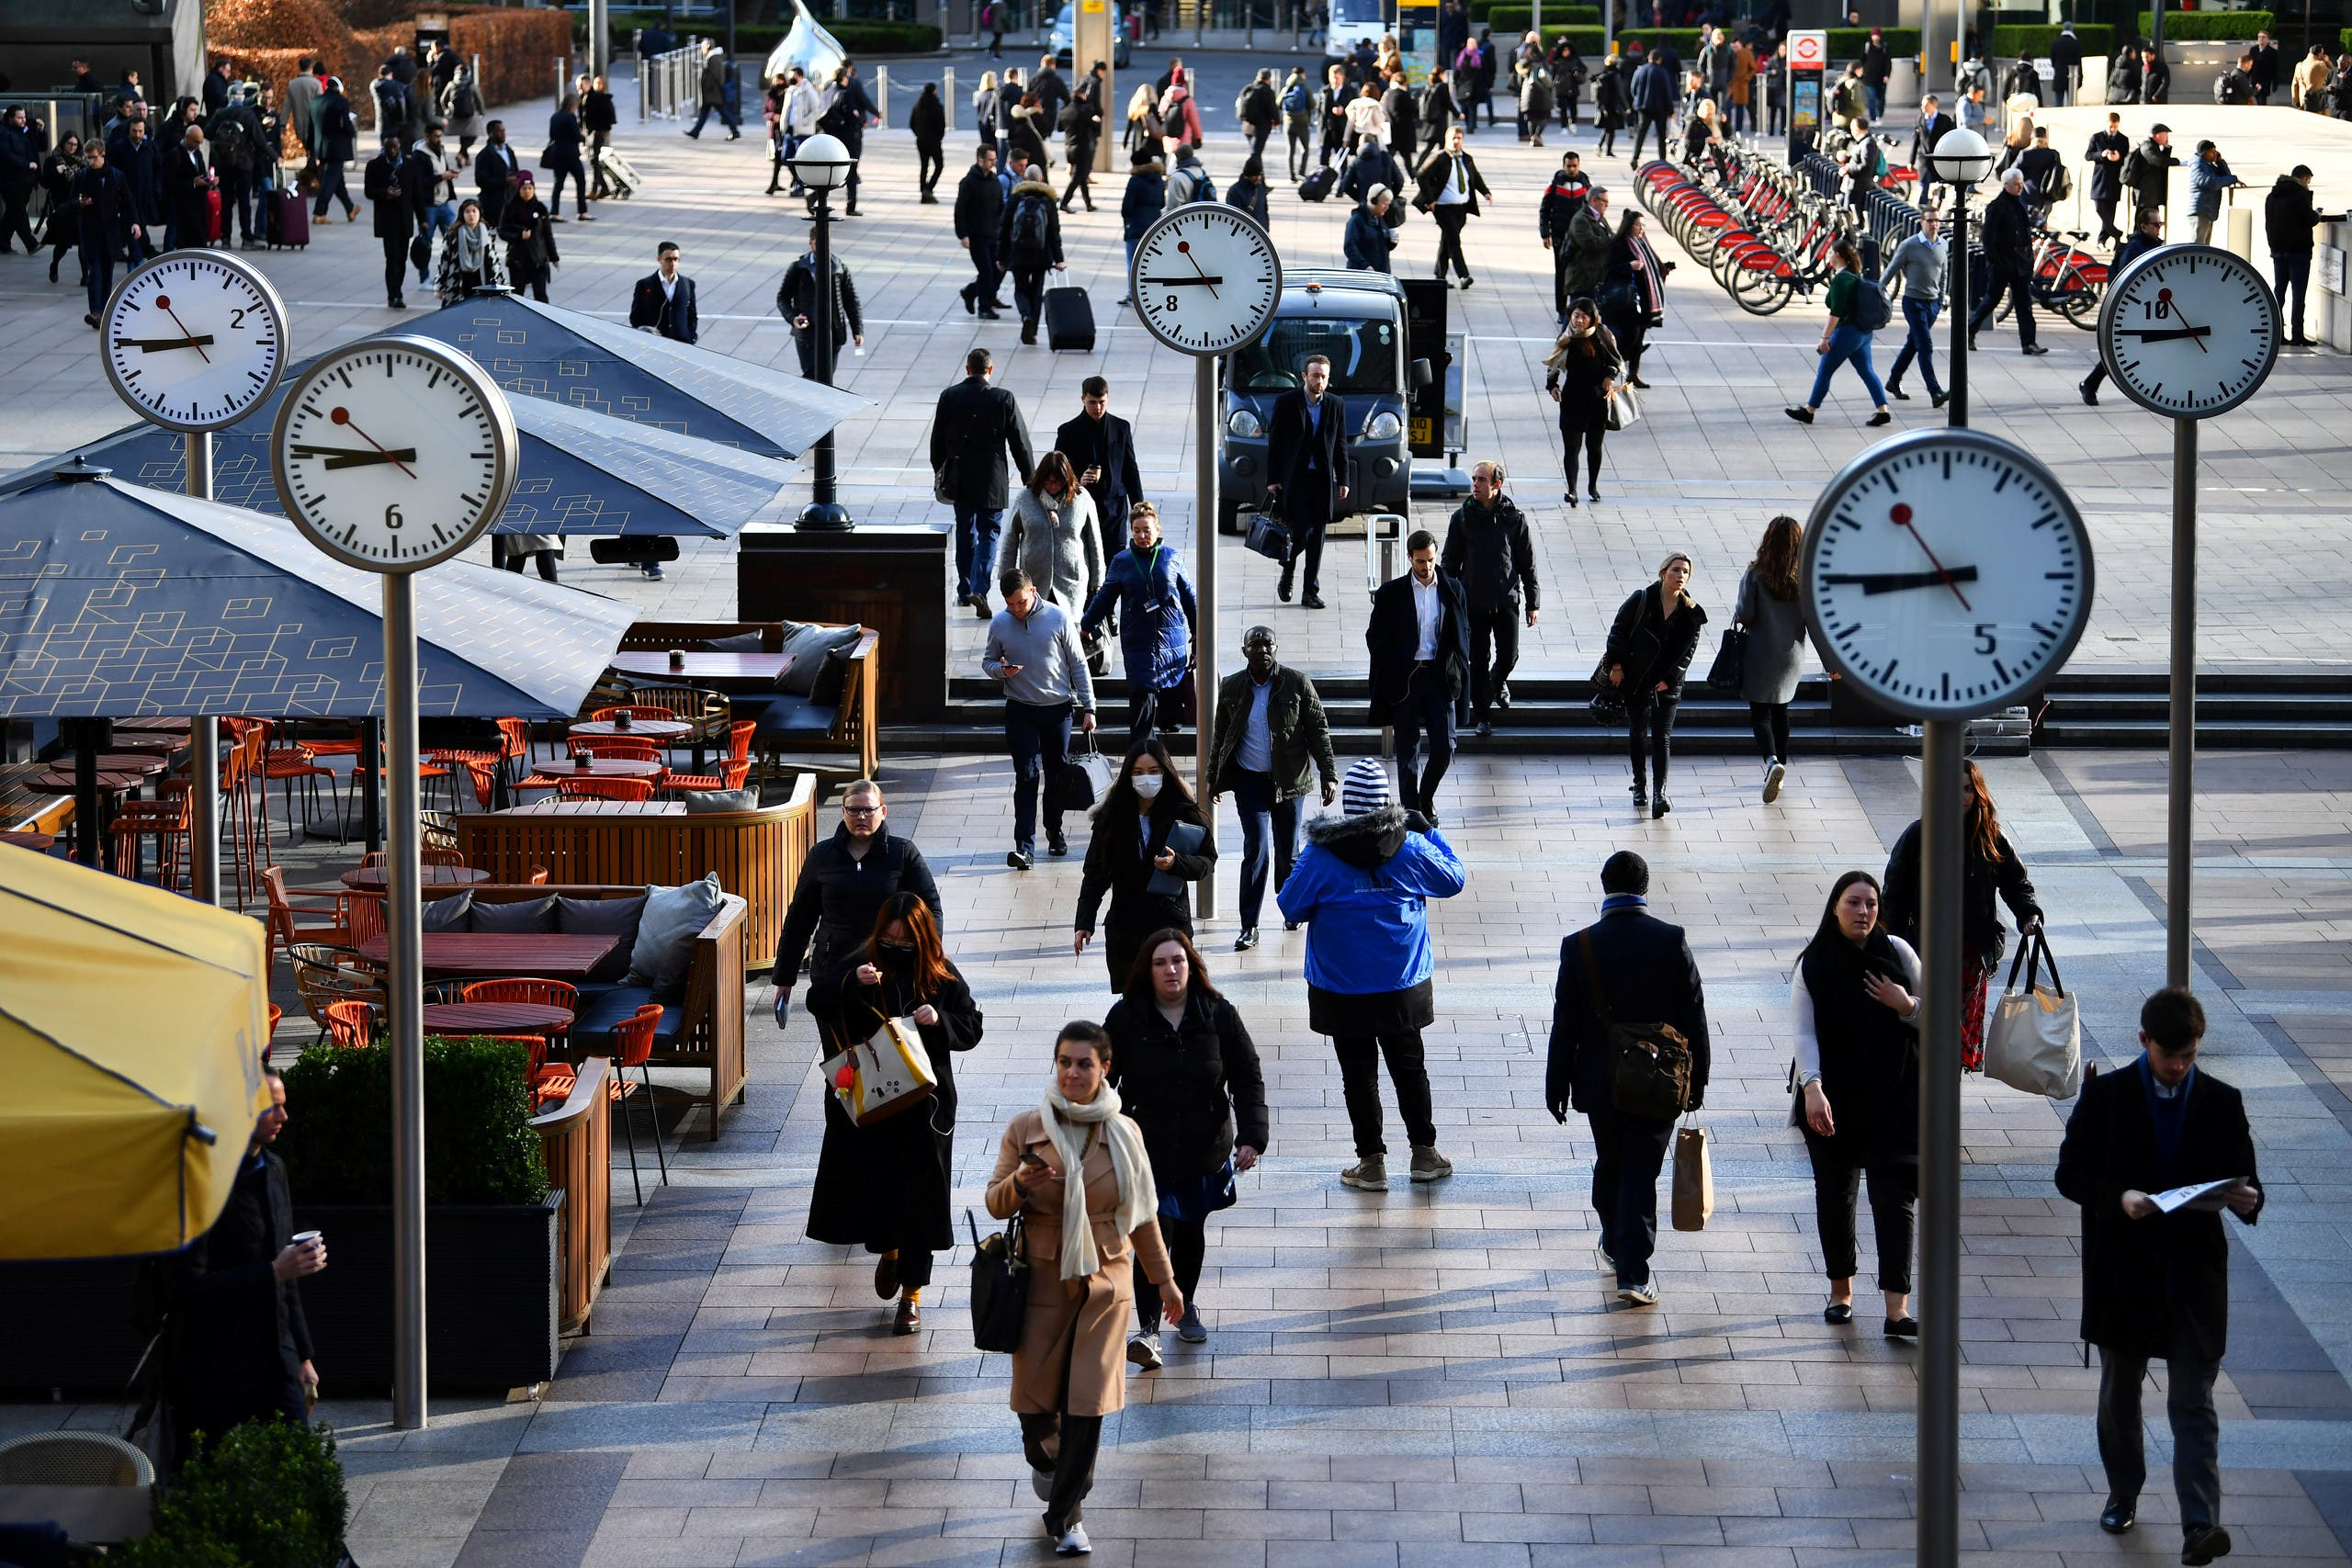 Commuters walk through Canary Wharf, as the number of coronavirus cases grow around the world and as European stocks plunge into bear market territory, in London, Britain March 9, 2020. (Reuters)